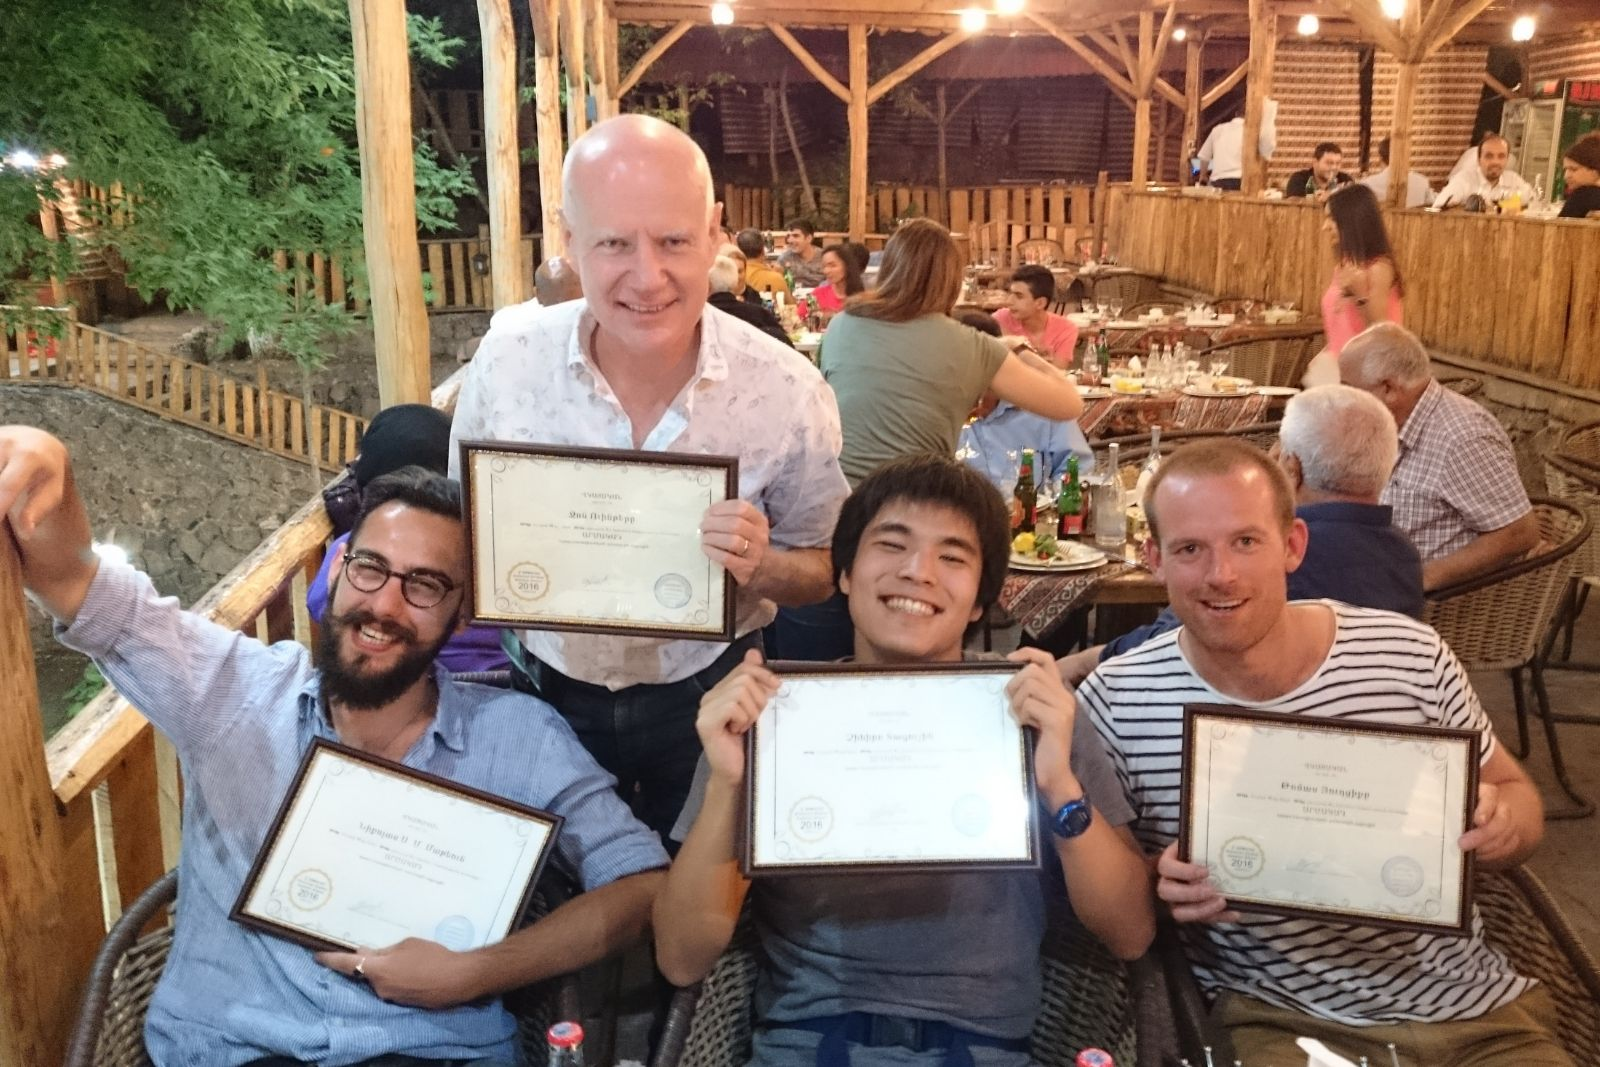 Armenian language summer school 2016 participants received their certificates. From left to right: Nicholas Matheou, John Wynter, Chihiro Taguchi, Thomas Jurczyk